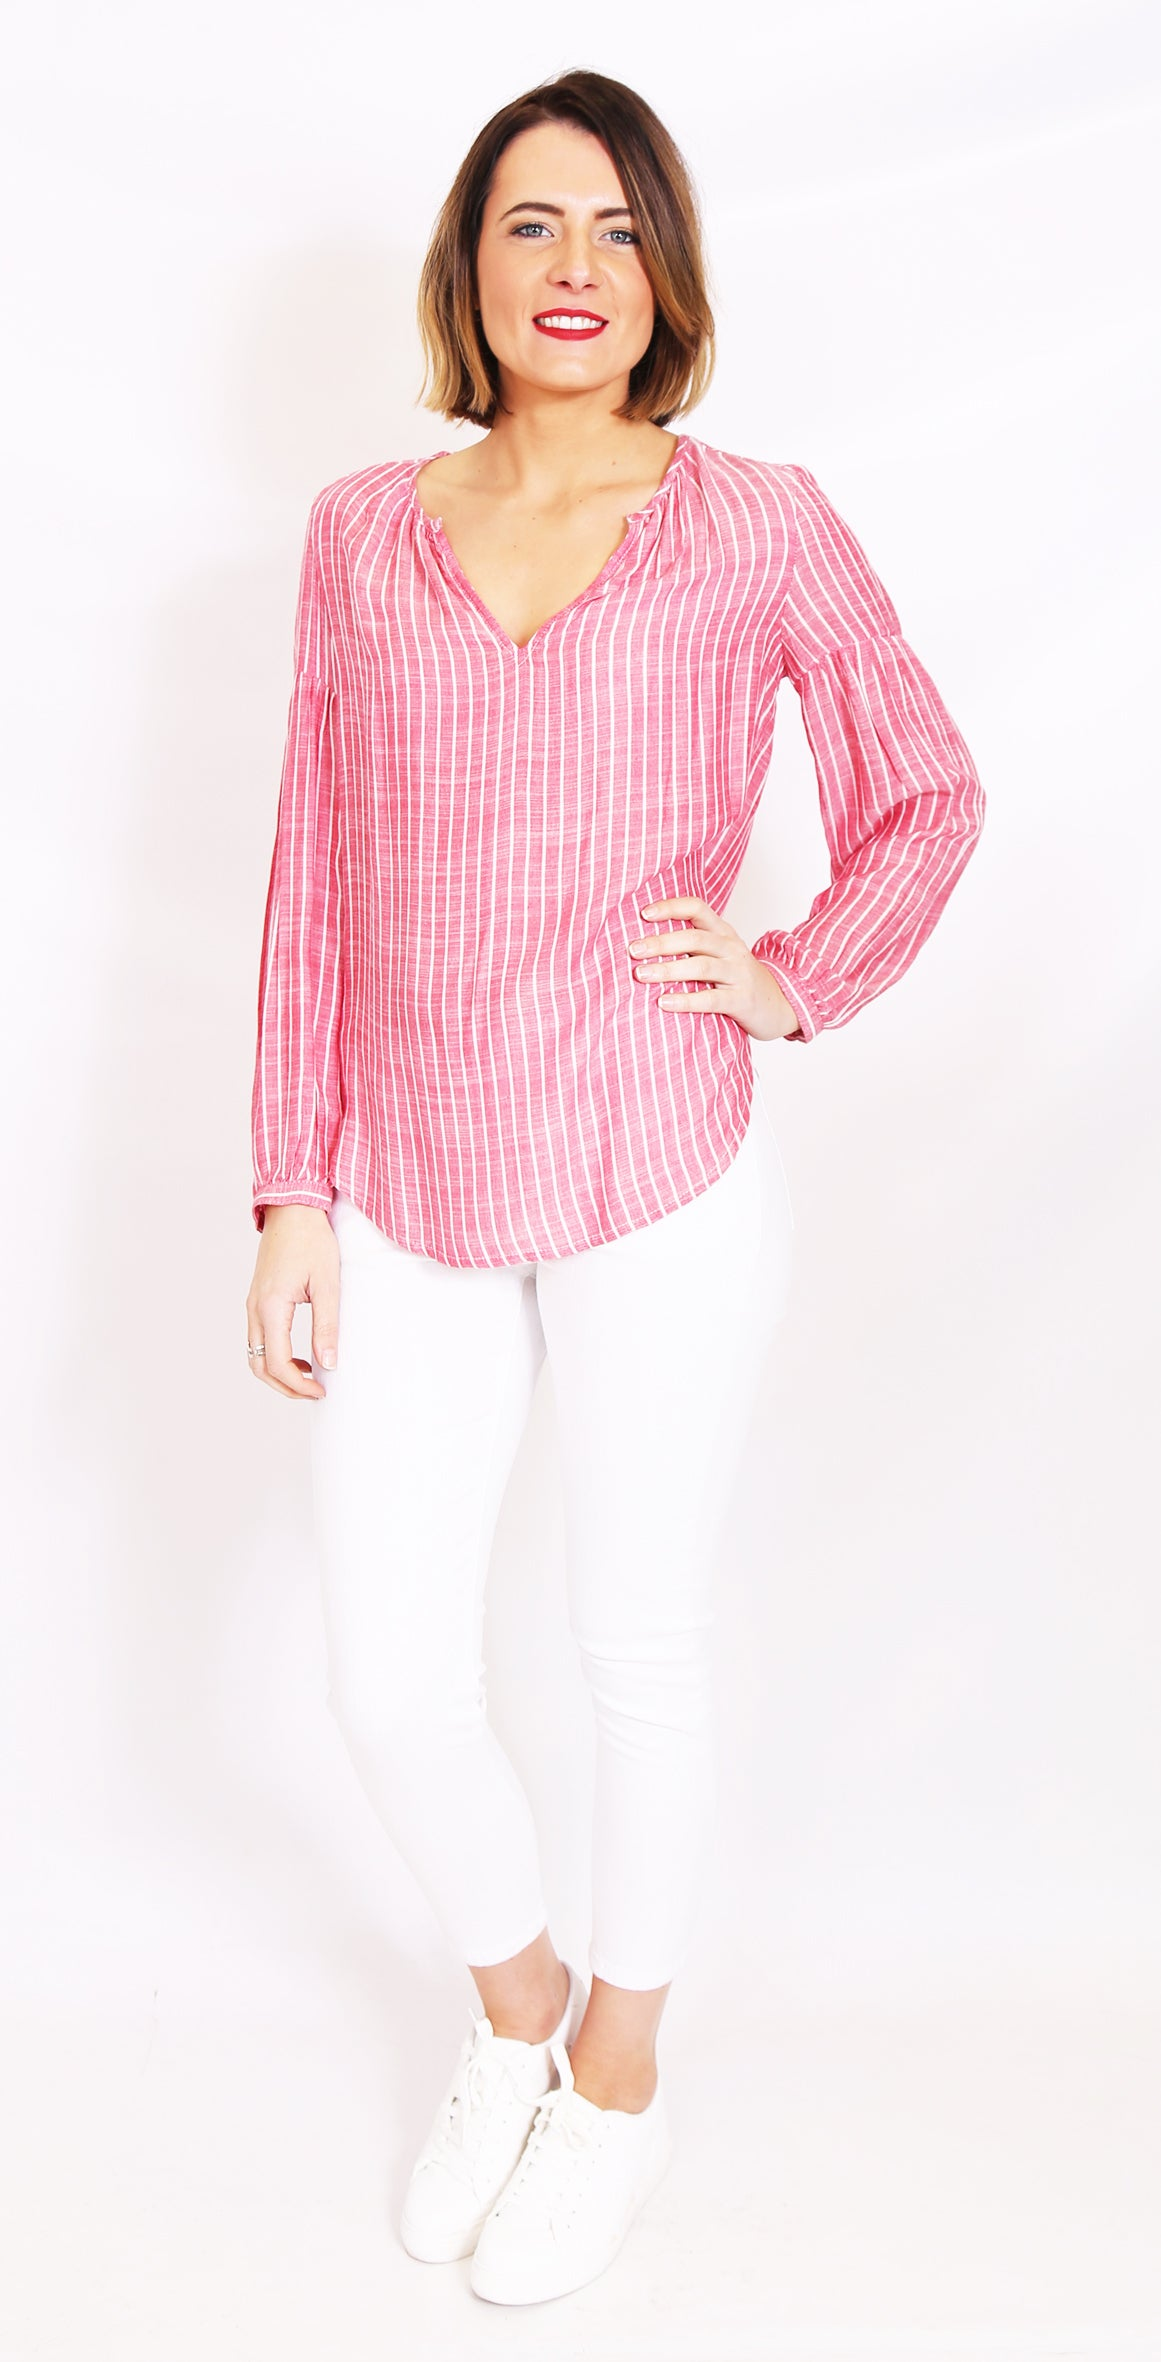 Wite - Pimms Blouse (Red Stripe)